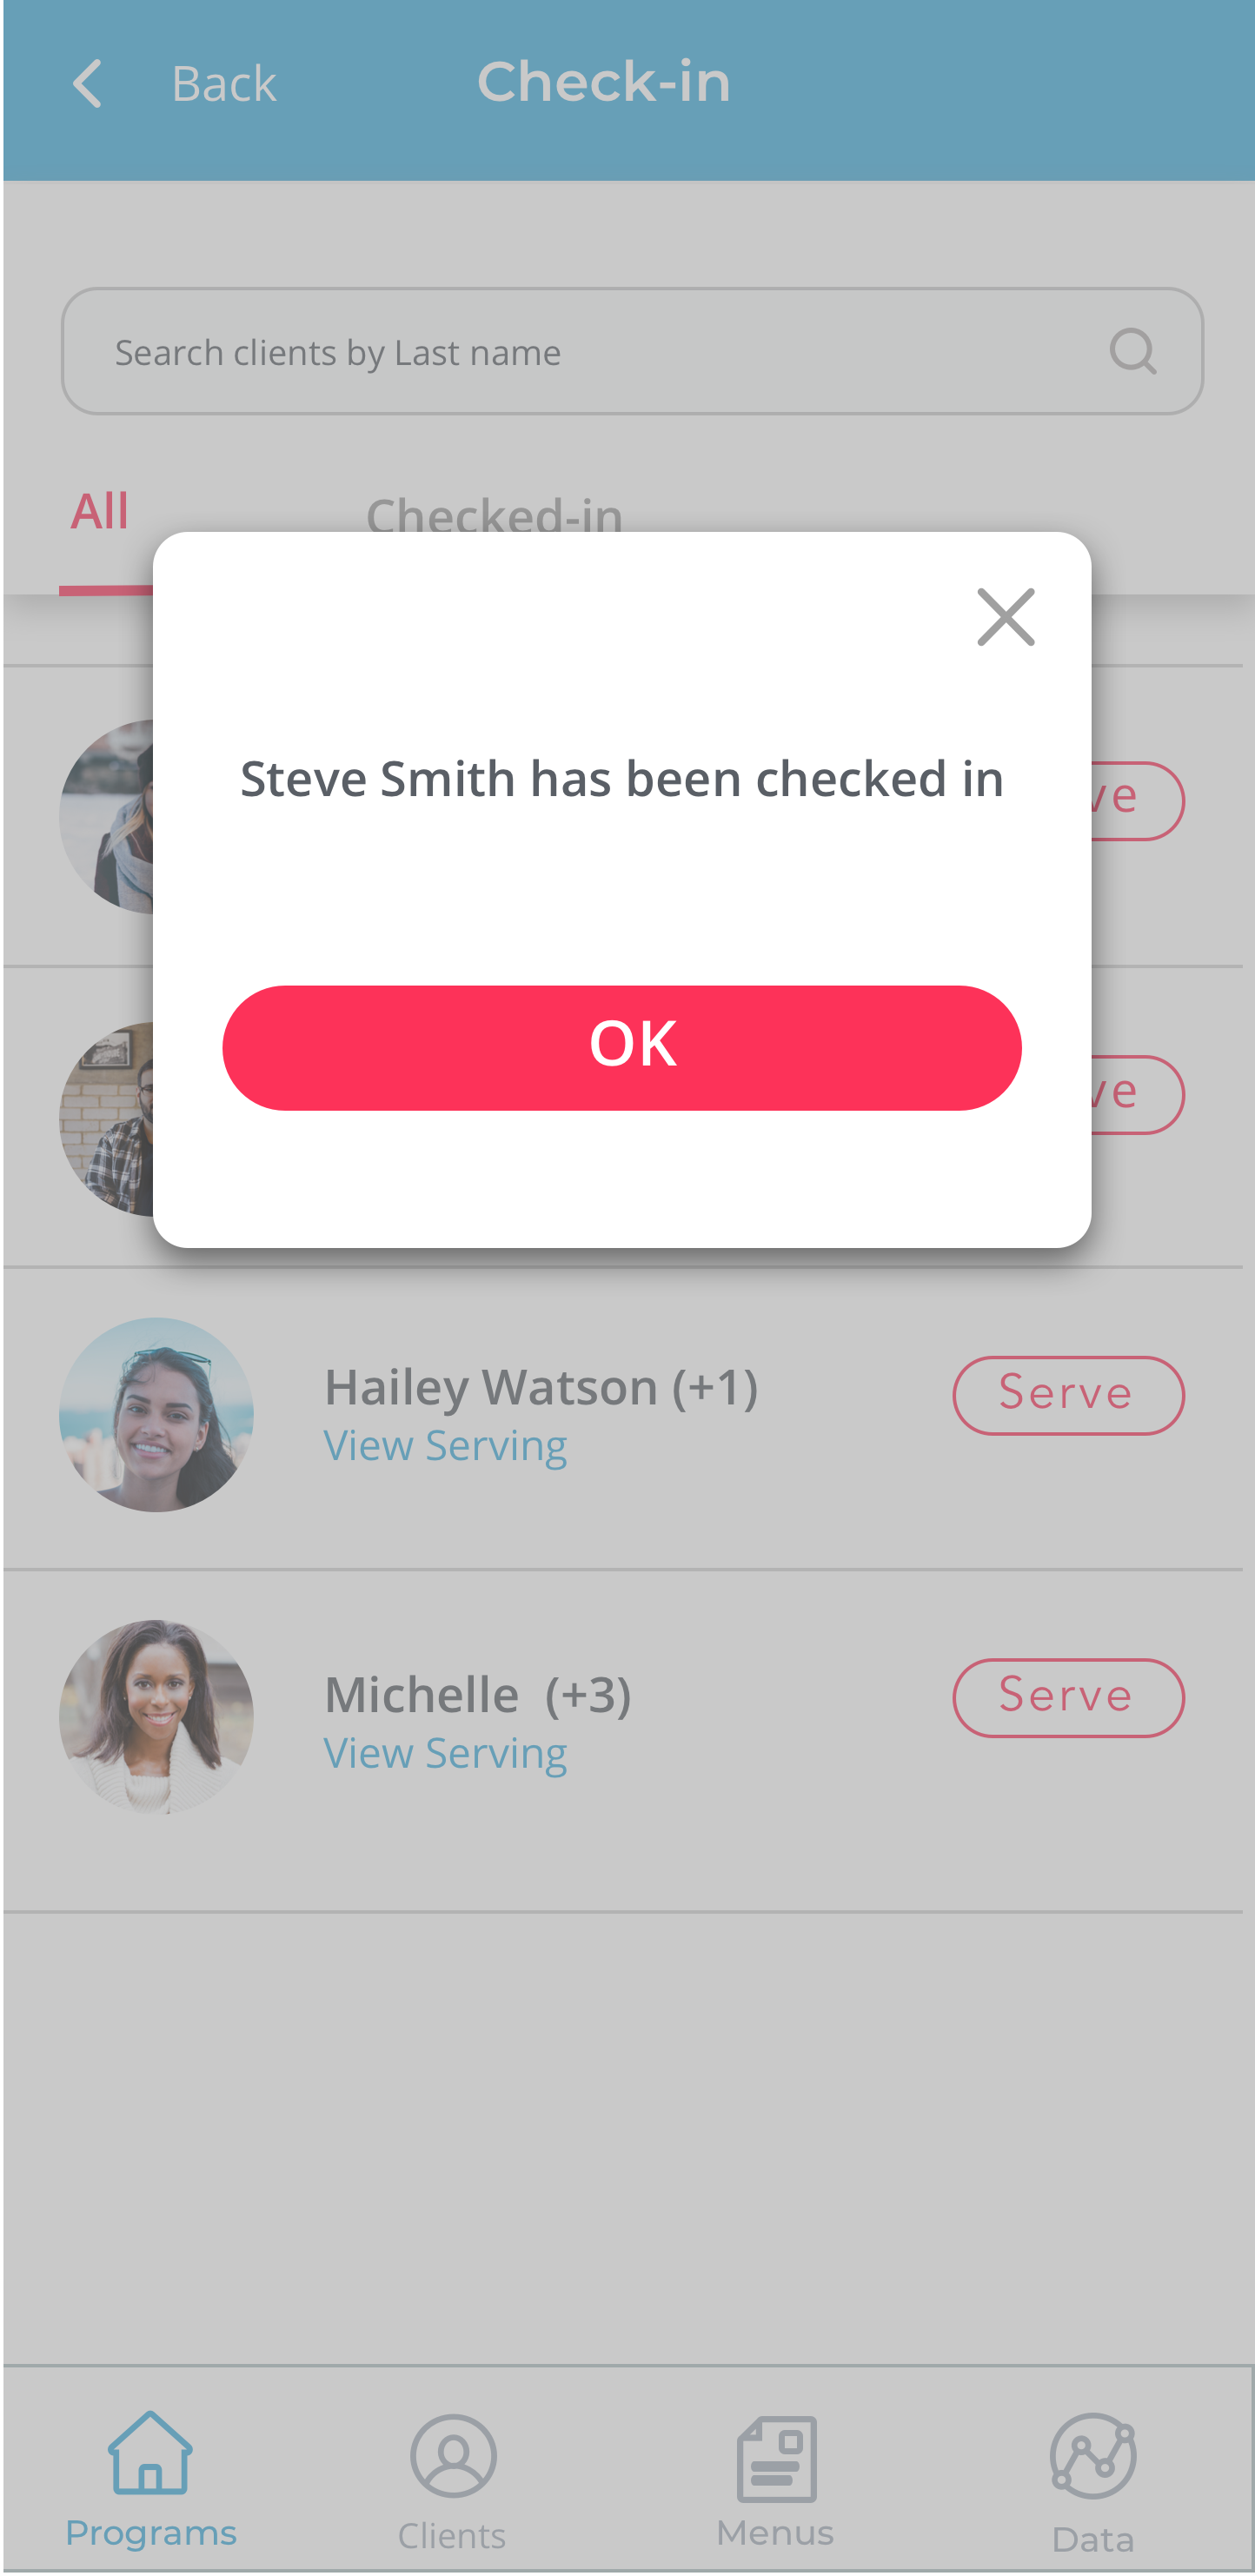 Check-in clients notification